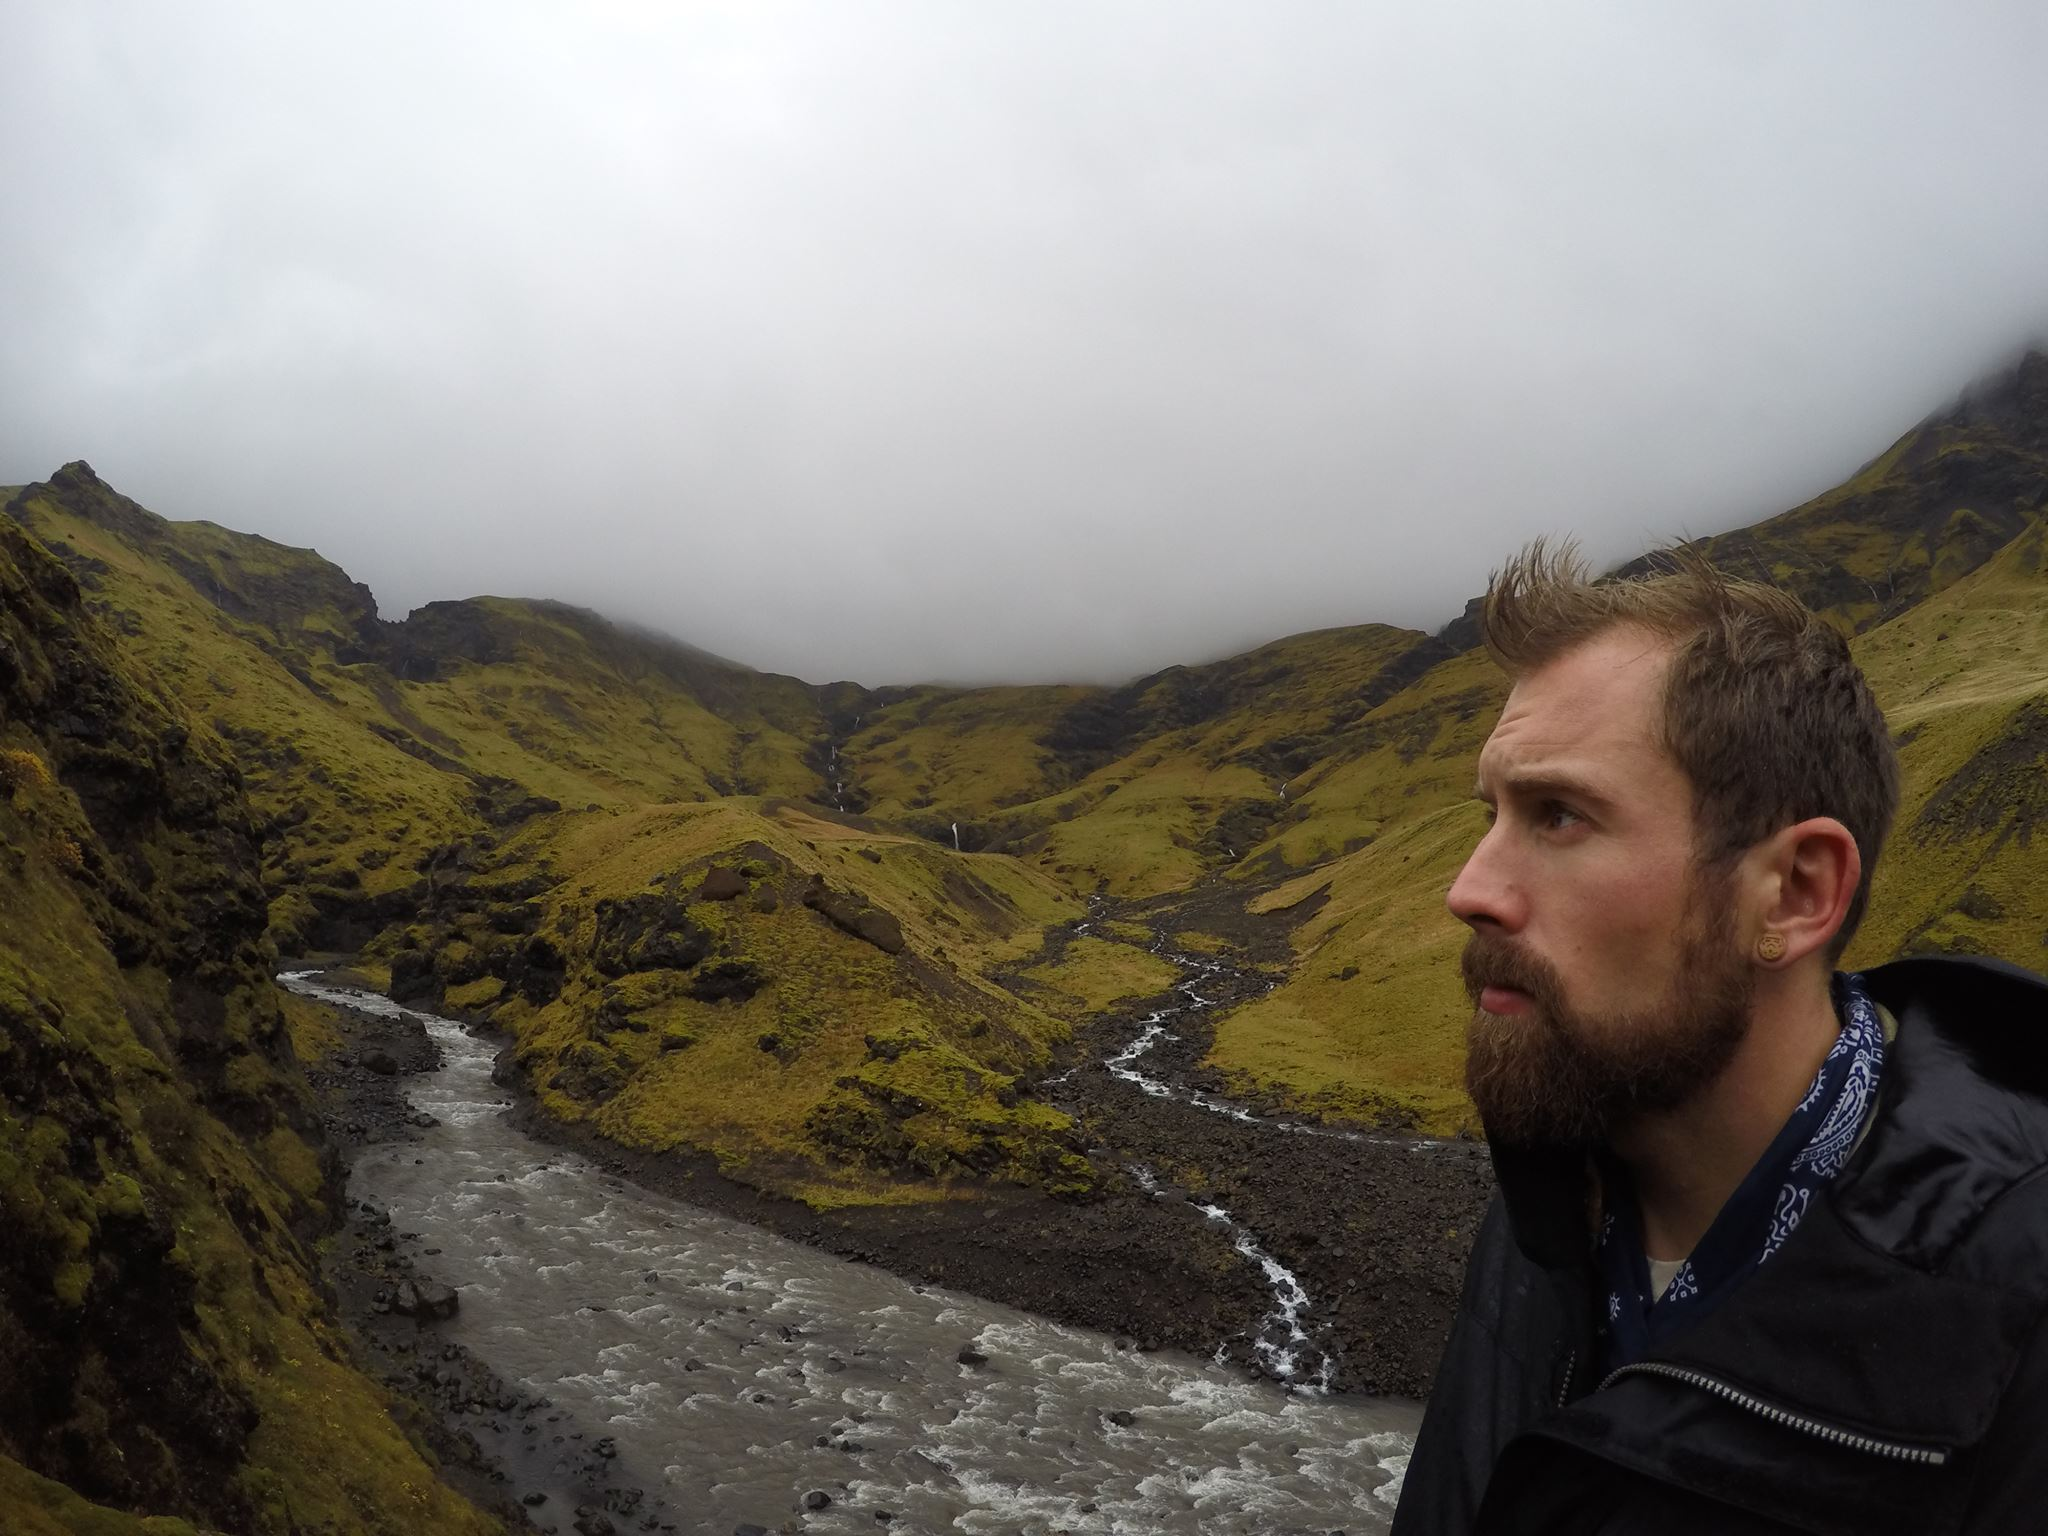 This photo was captured with the Hero 4 Silver at Seljavallalaug in Southern, Iceland